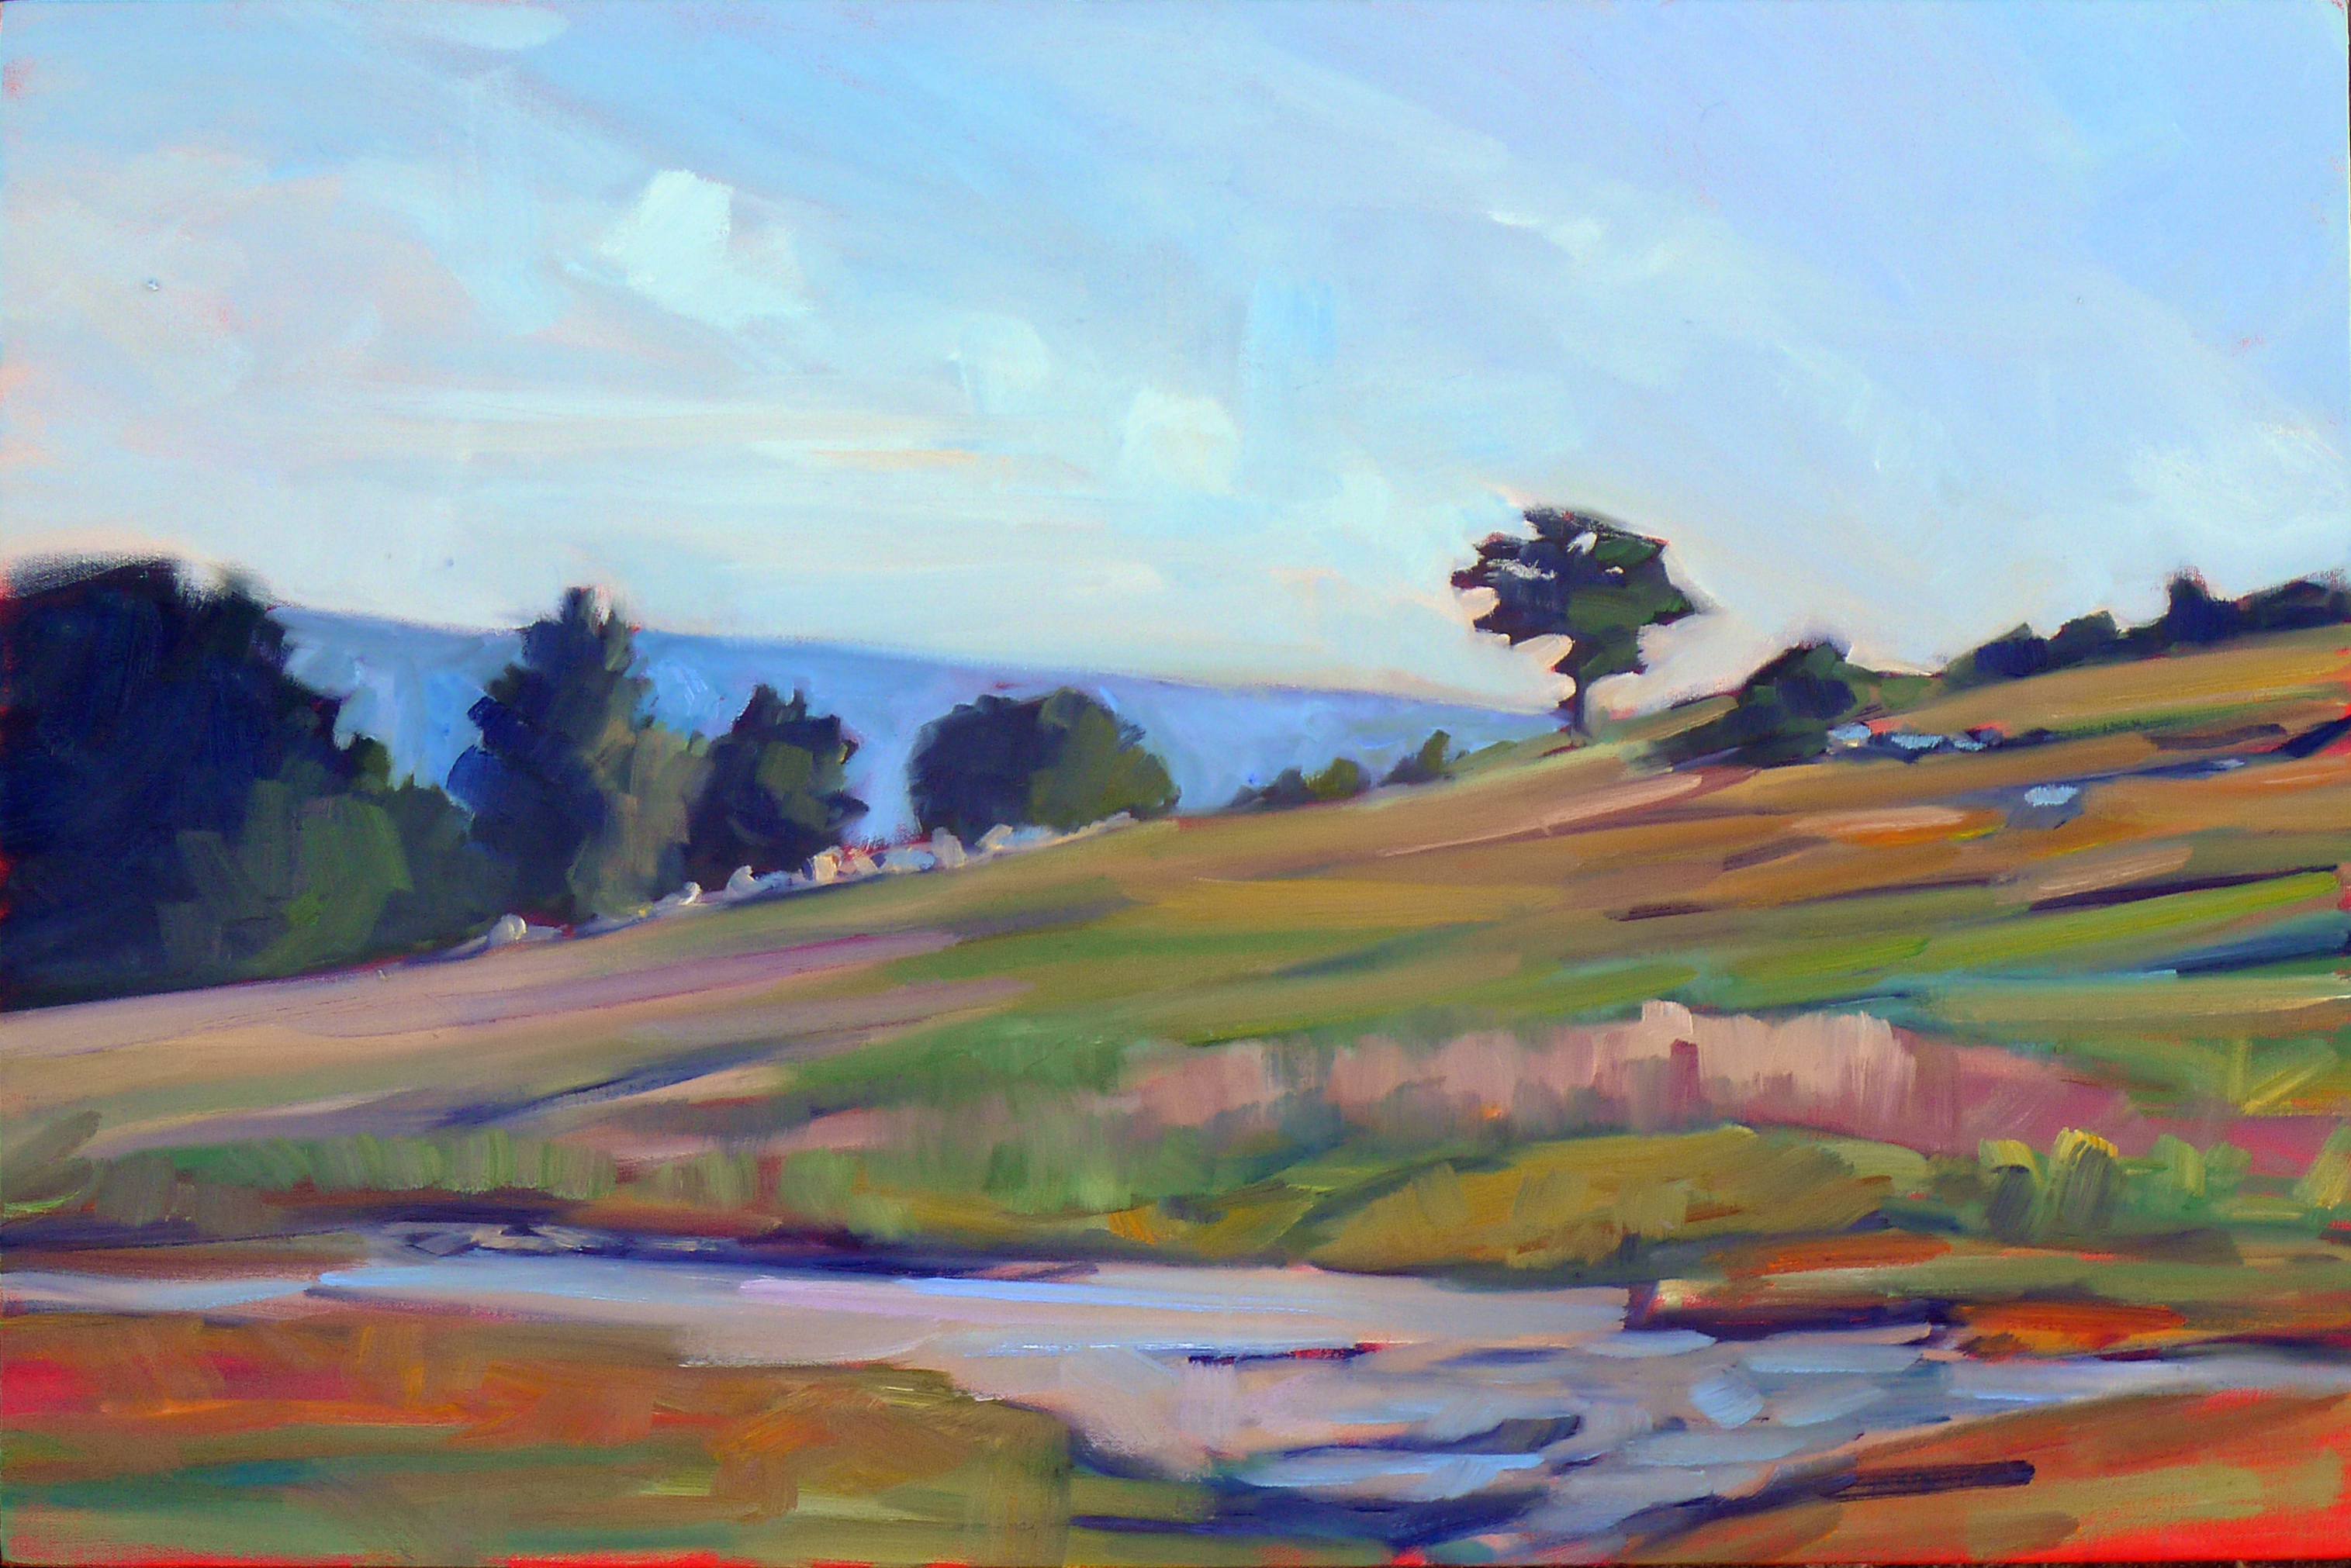 """Blueberry barrens, Clary Hill,"" oil on canvas, 24X36, $3985 framed."